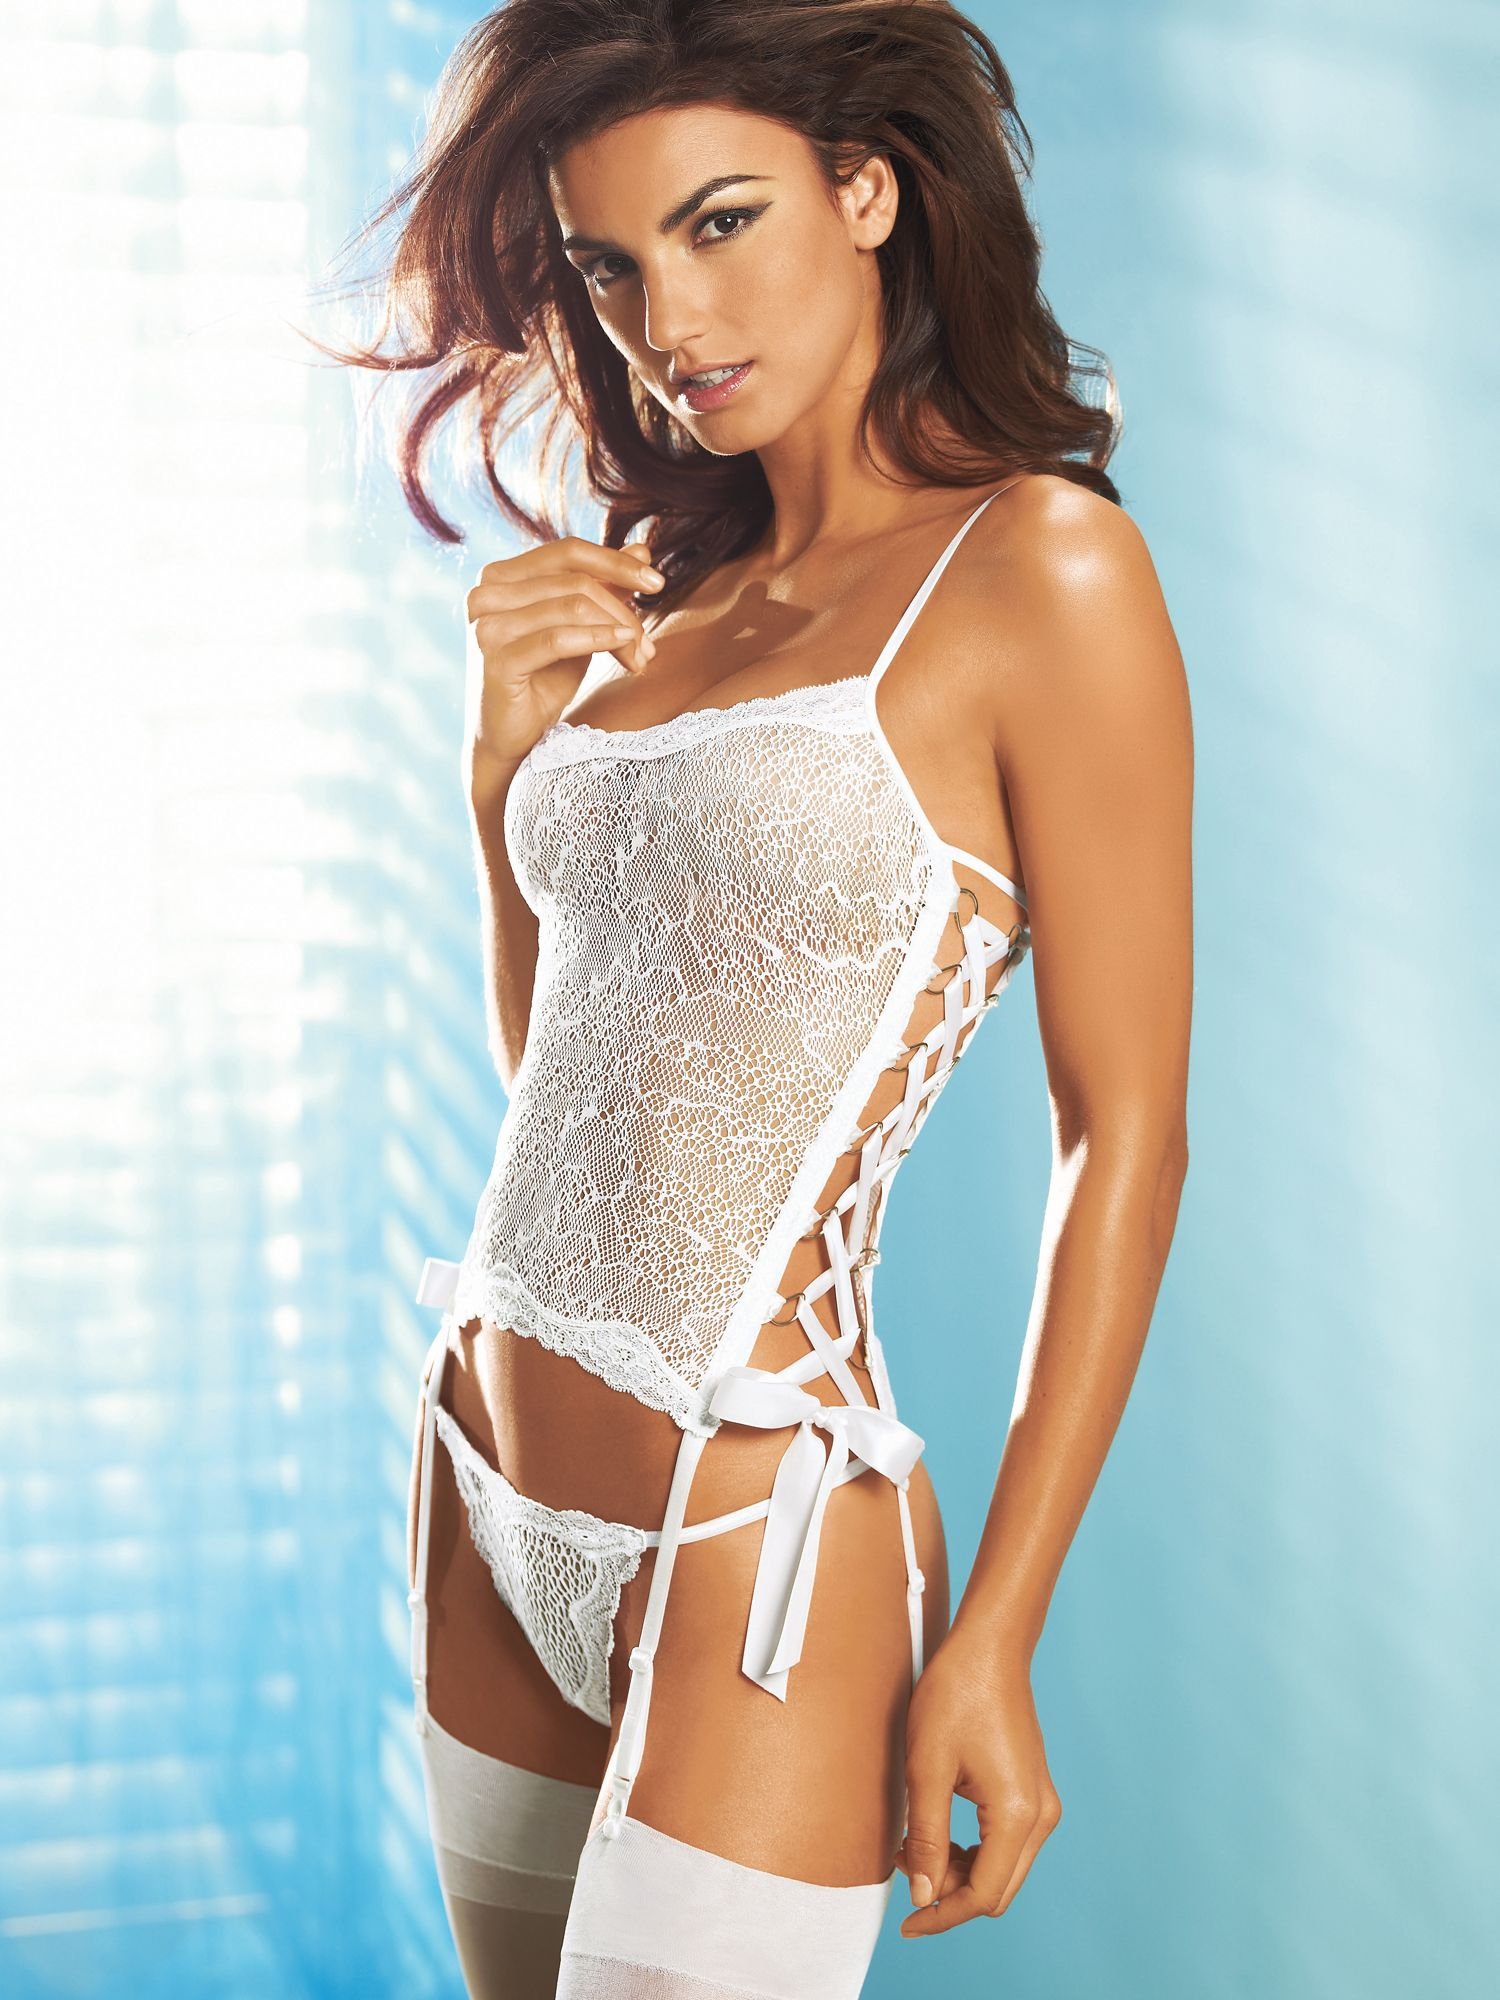 hot lingerie girl - Jessica Pace